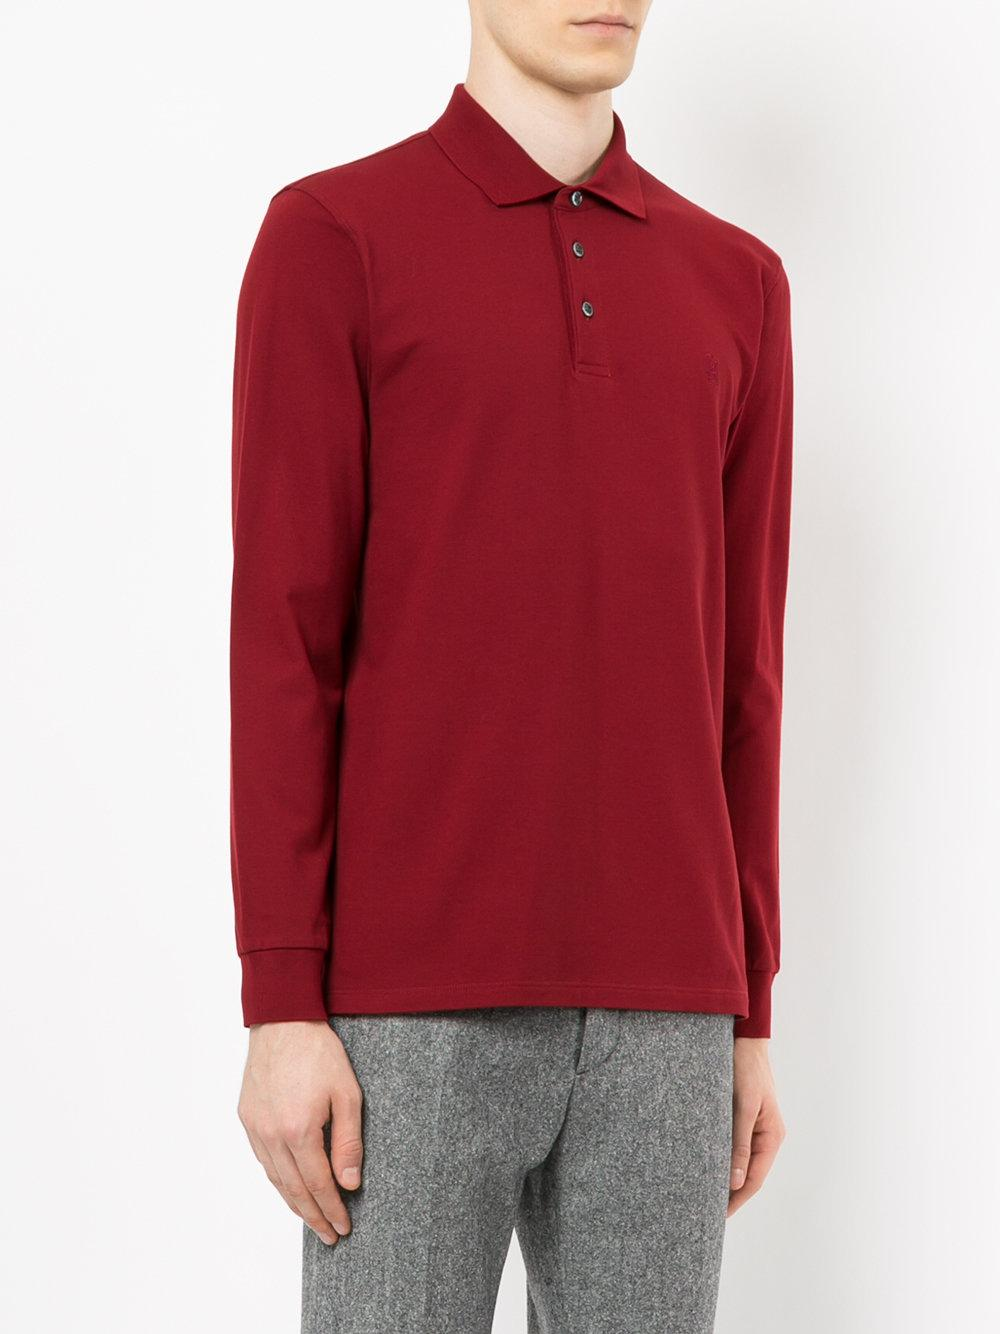 Gieves & Hawkes Cotton Embroidered Logo Polo Shirt for Men - Lyst